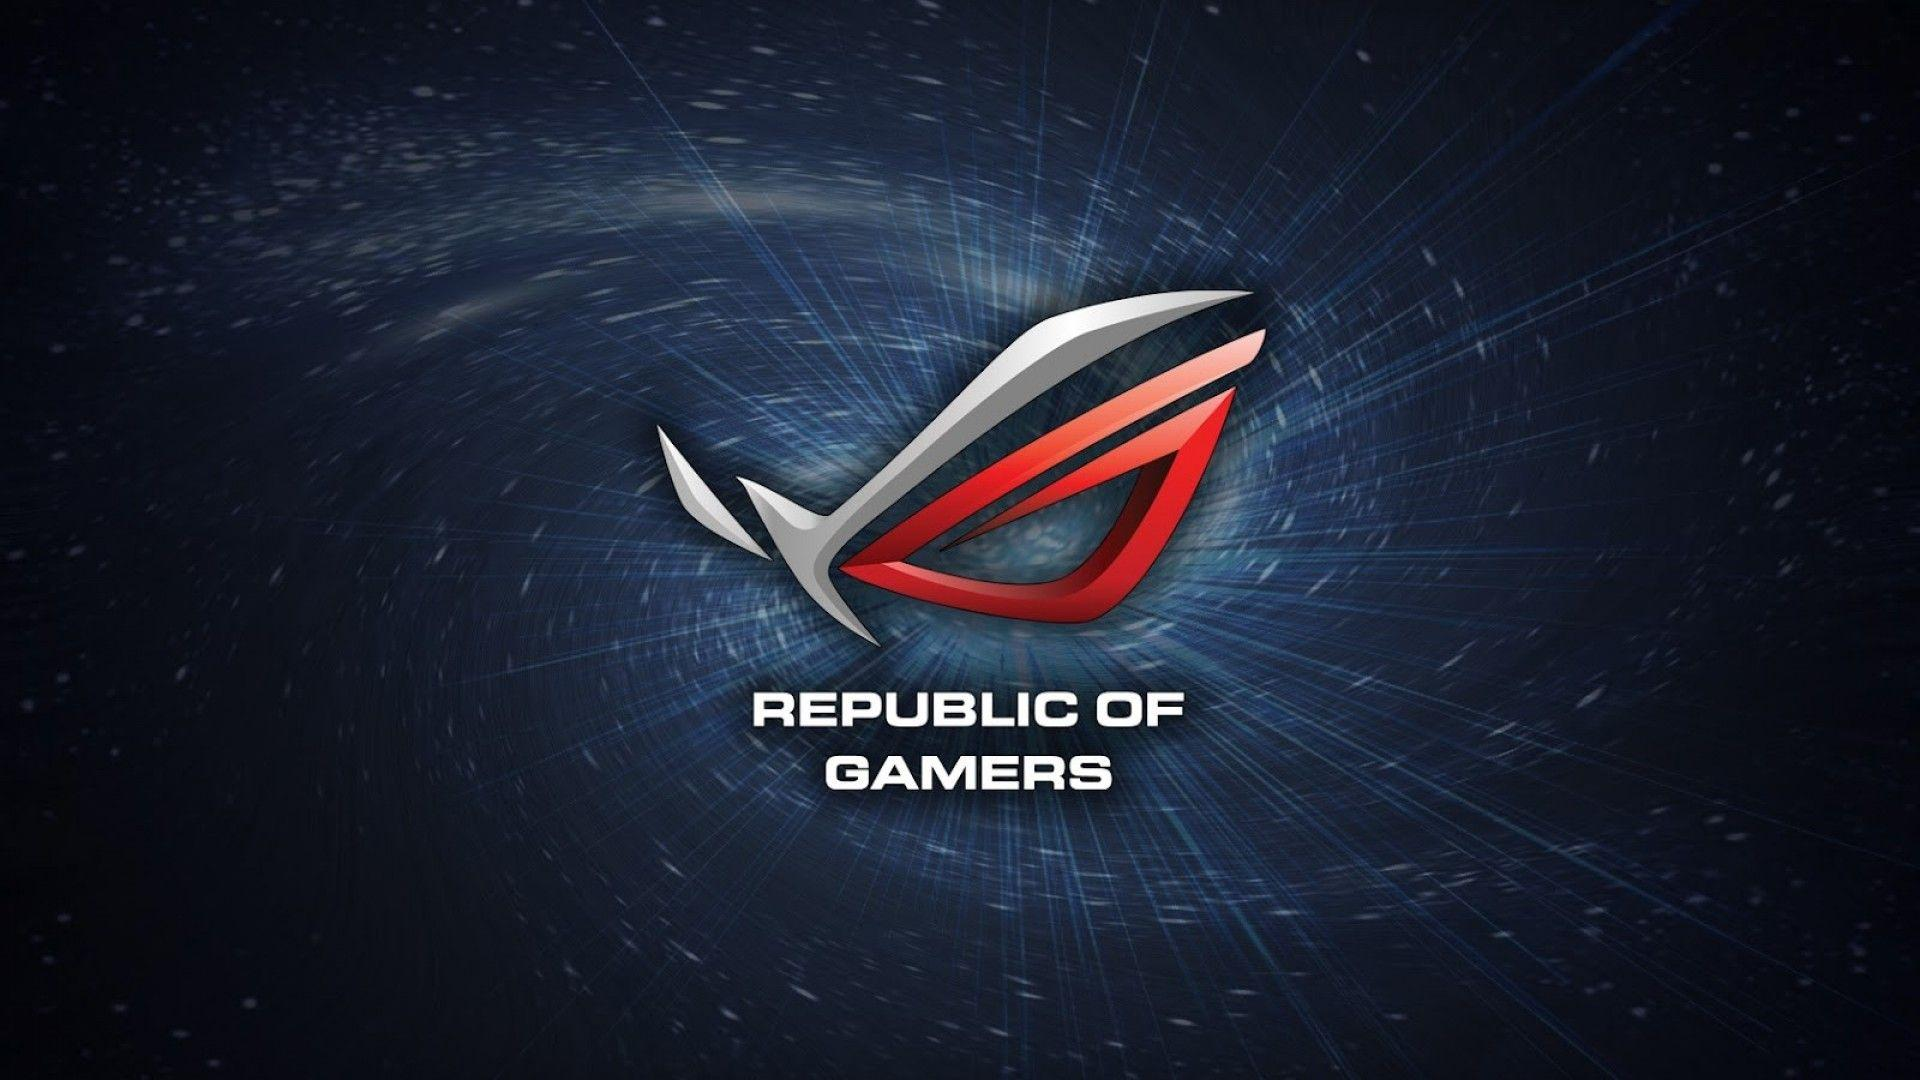 Republic of gamers wallpapers wallpaper cave for Fond ecran gaming